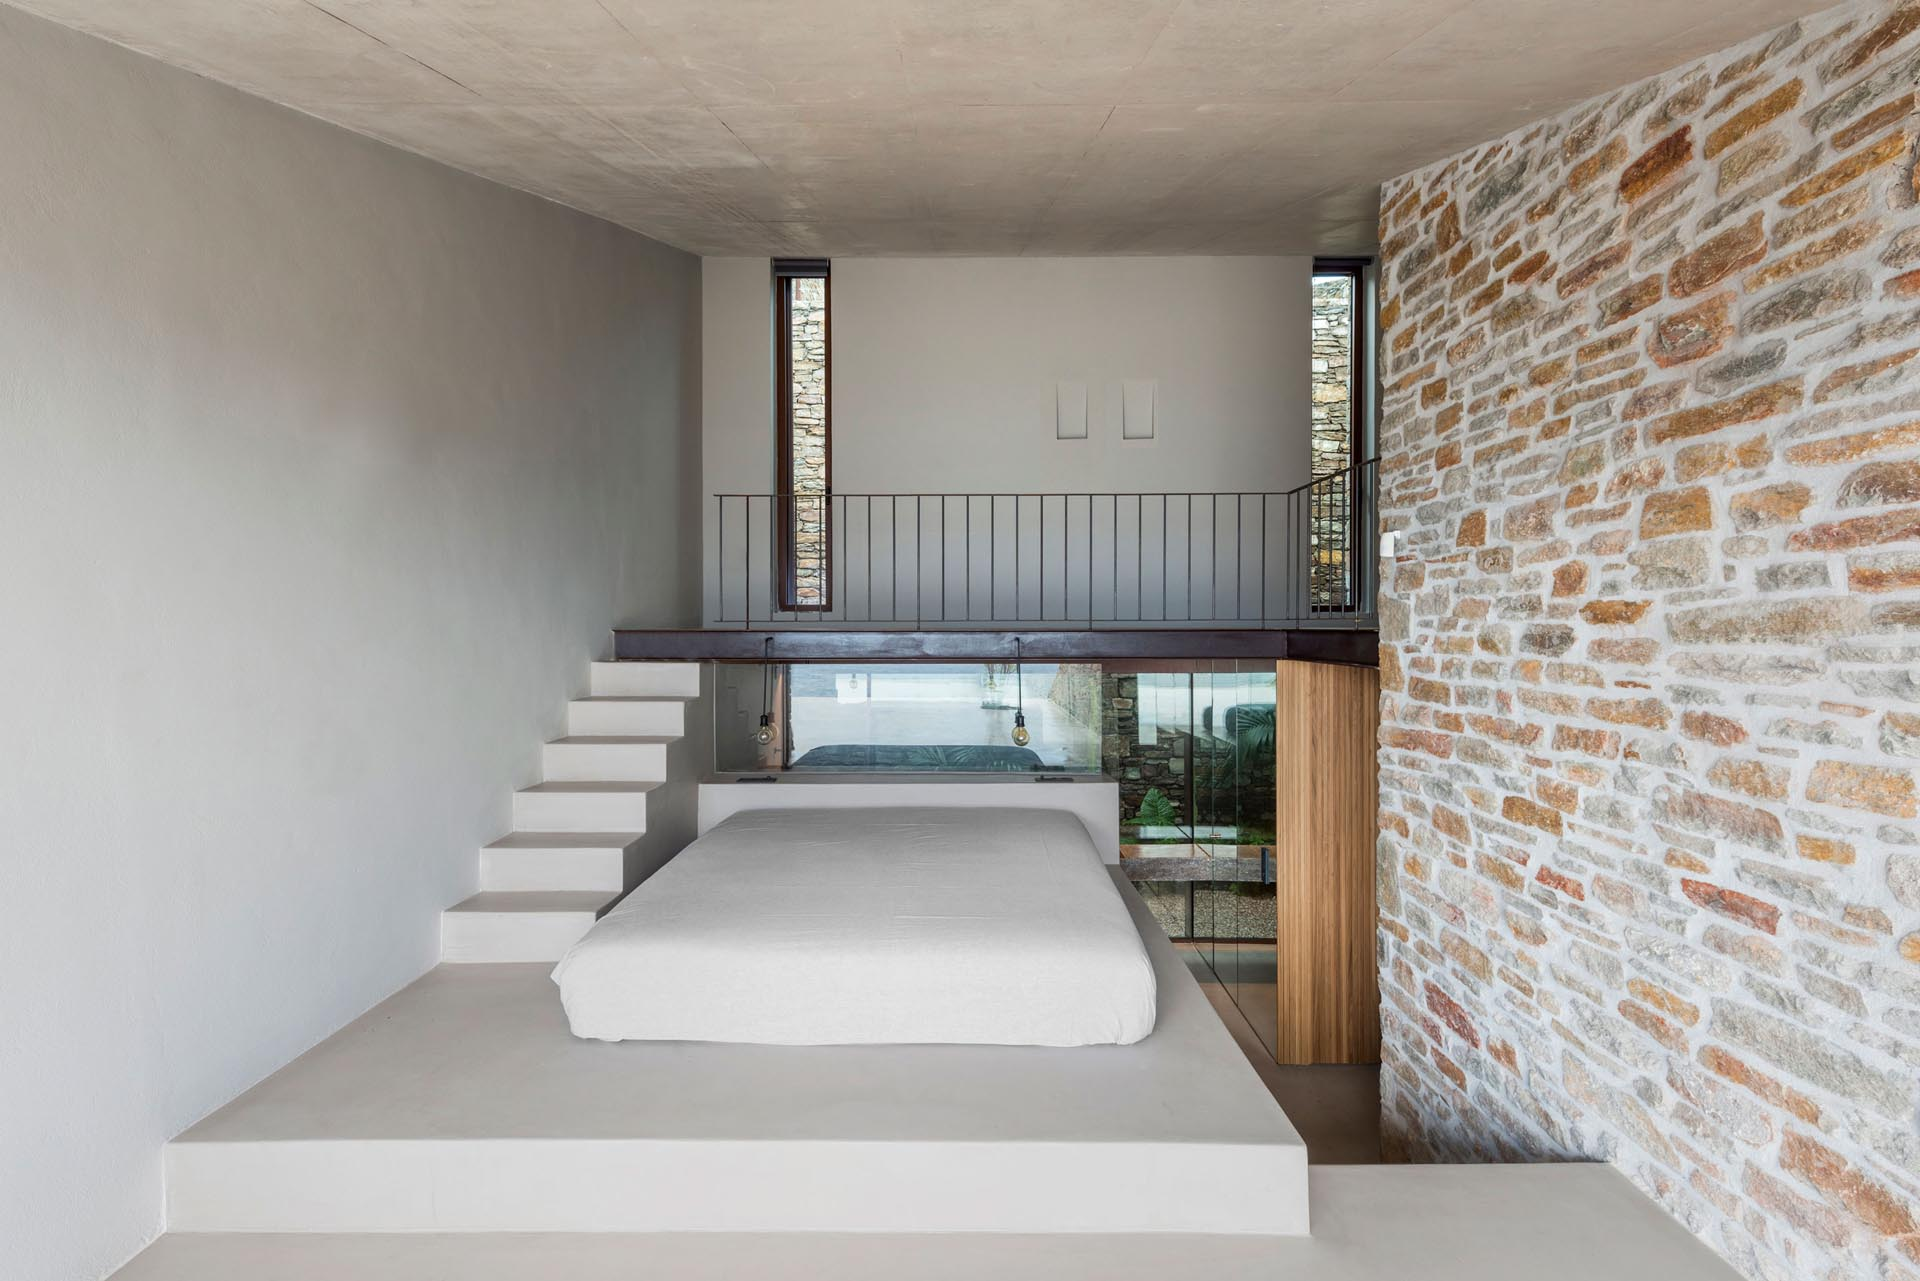 A minimalist bedroom with a bed raised on a platform to take advantage of water views.